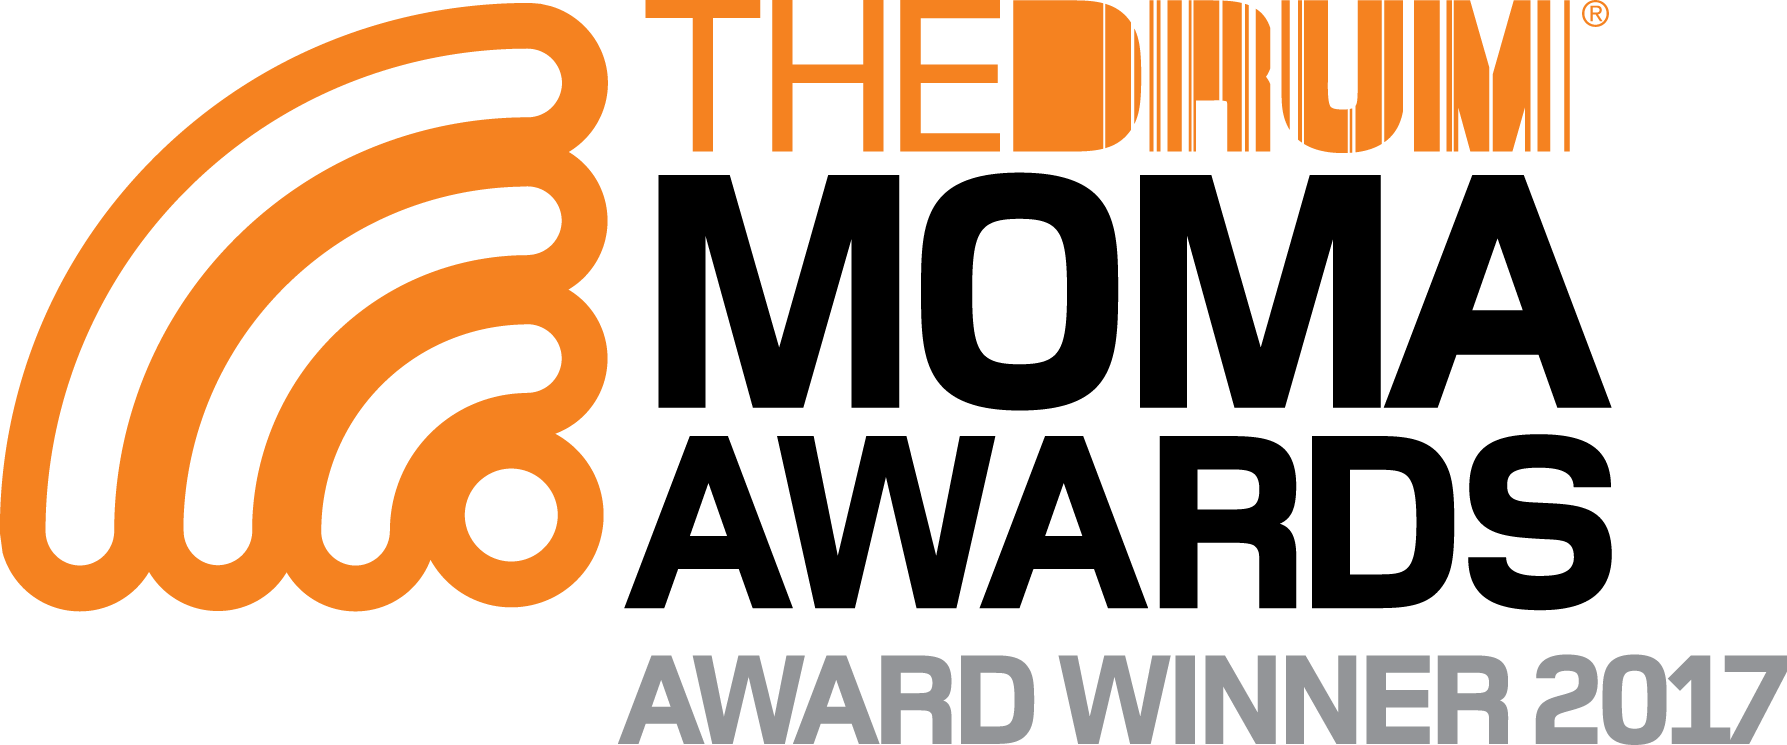 Drum-moma-awards-winner